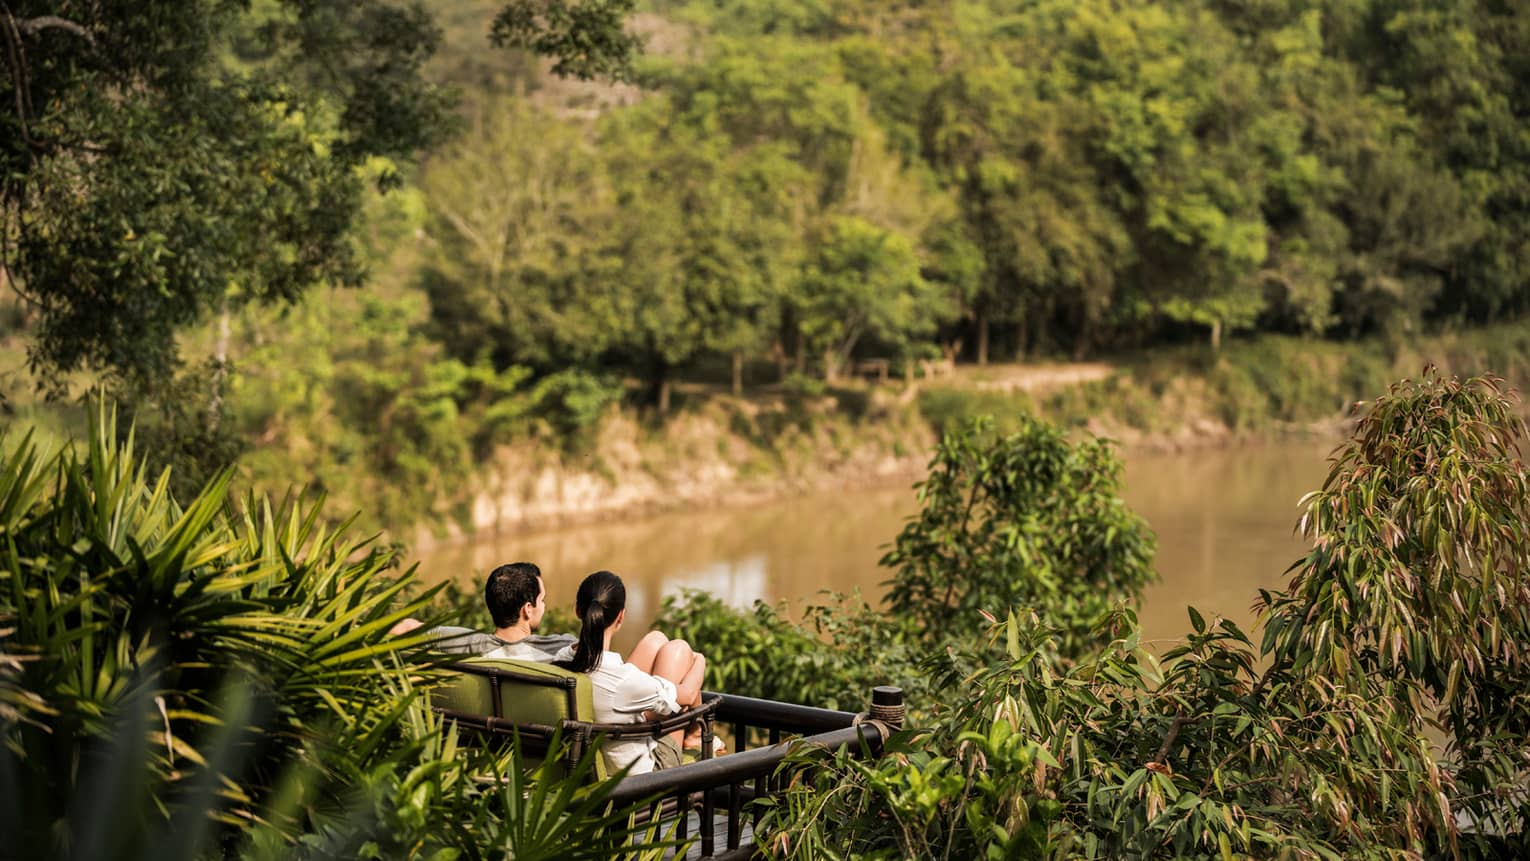 Couple sits on wood bench surrounded by tropical plants, overlooking river